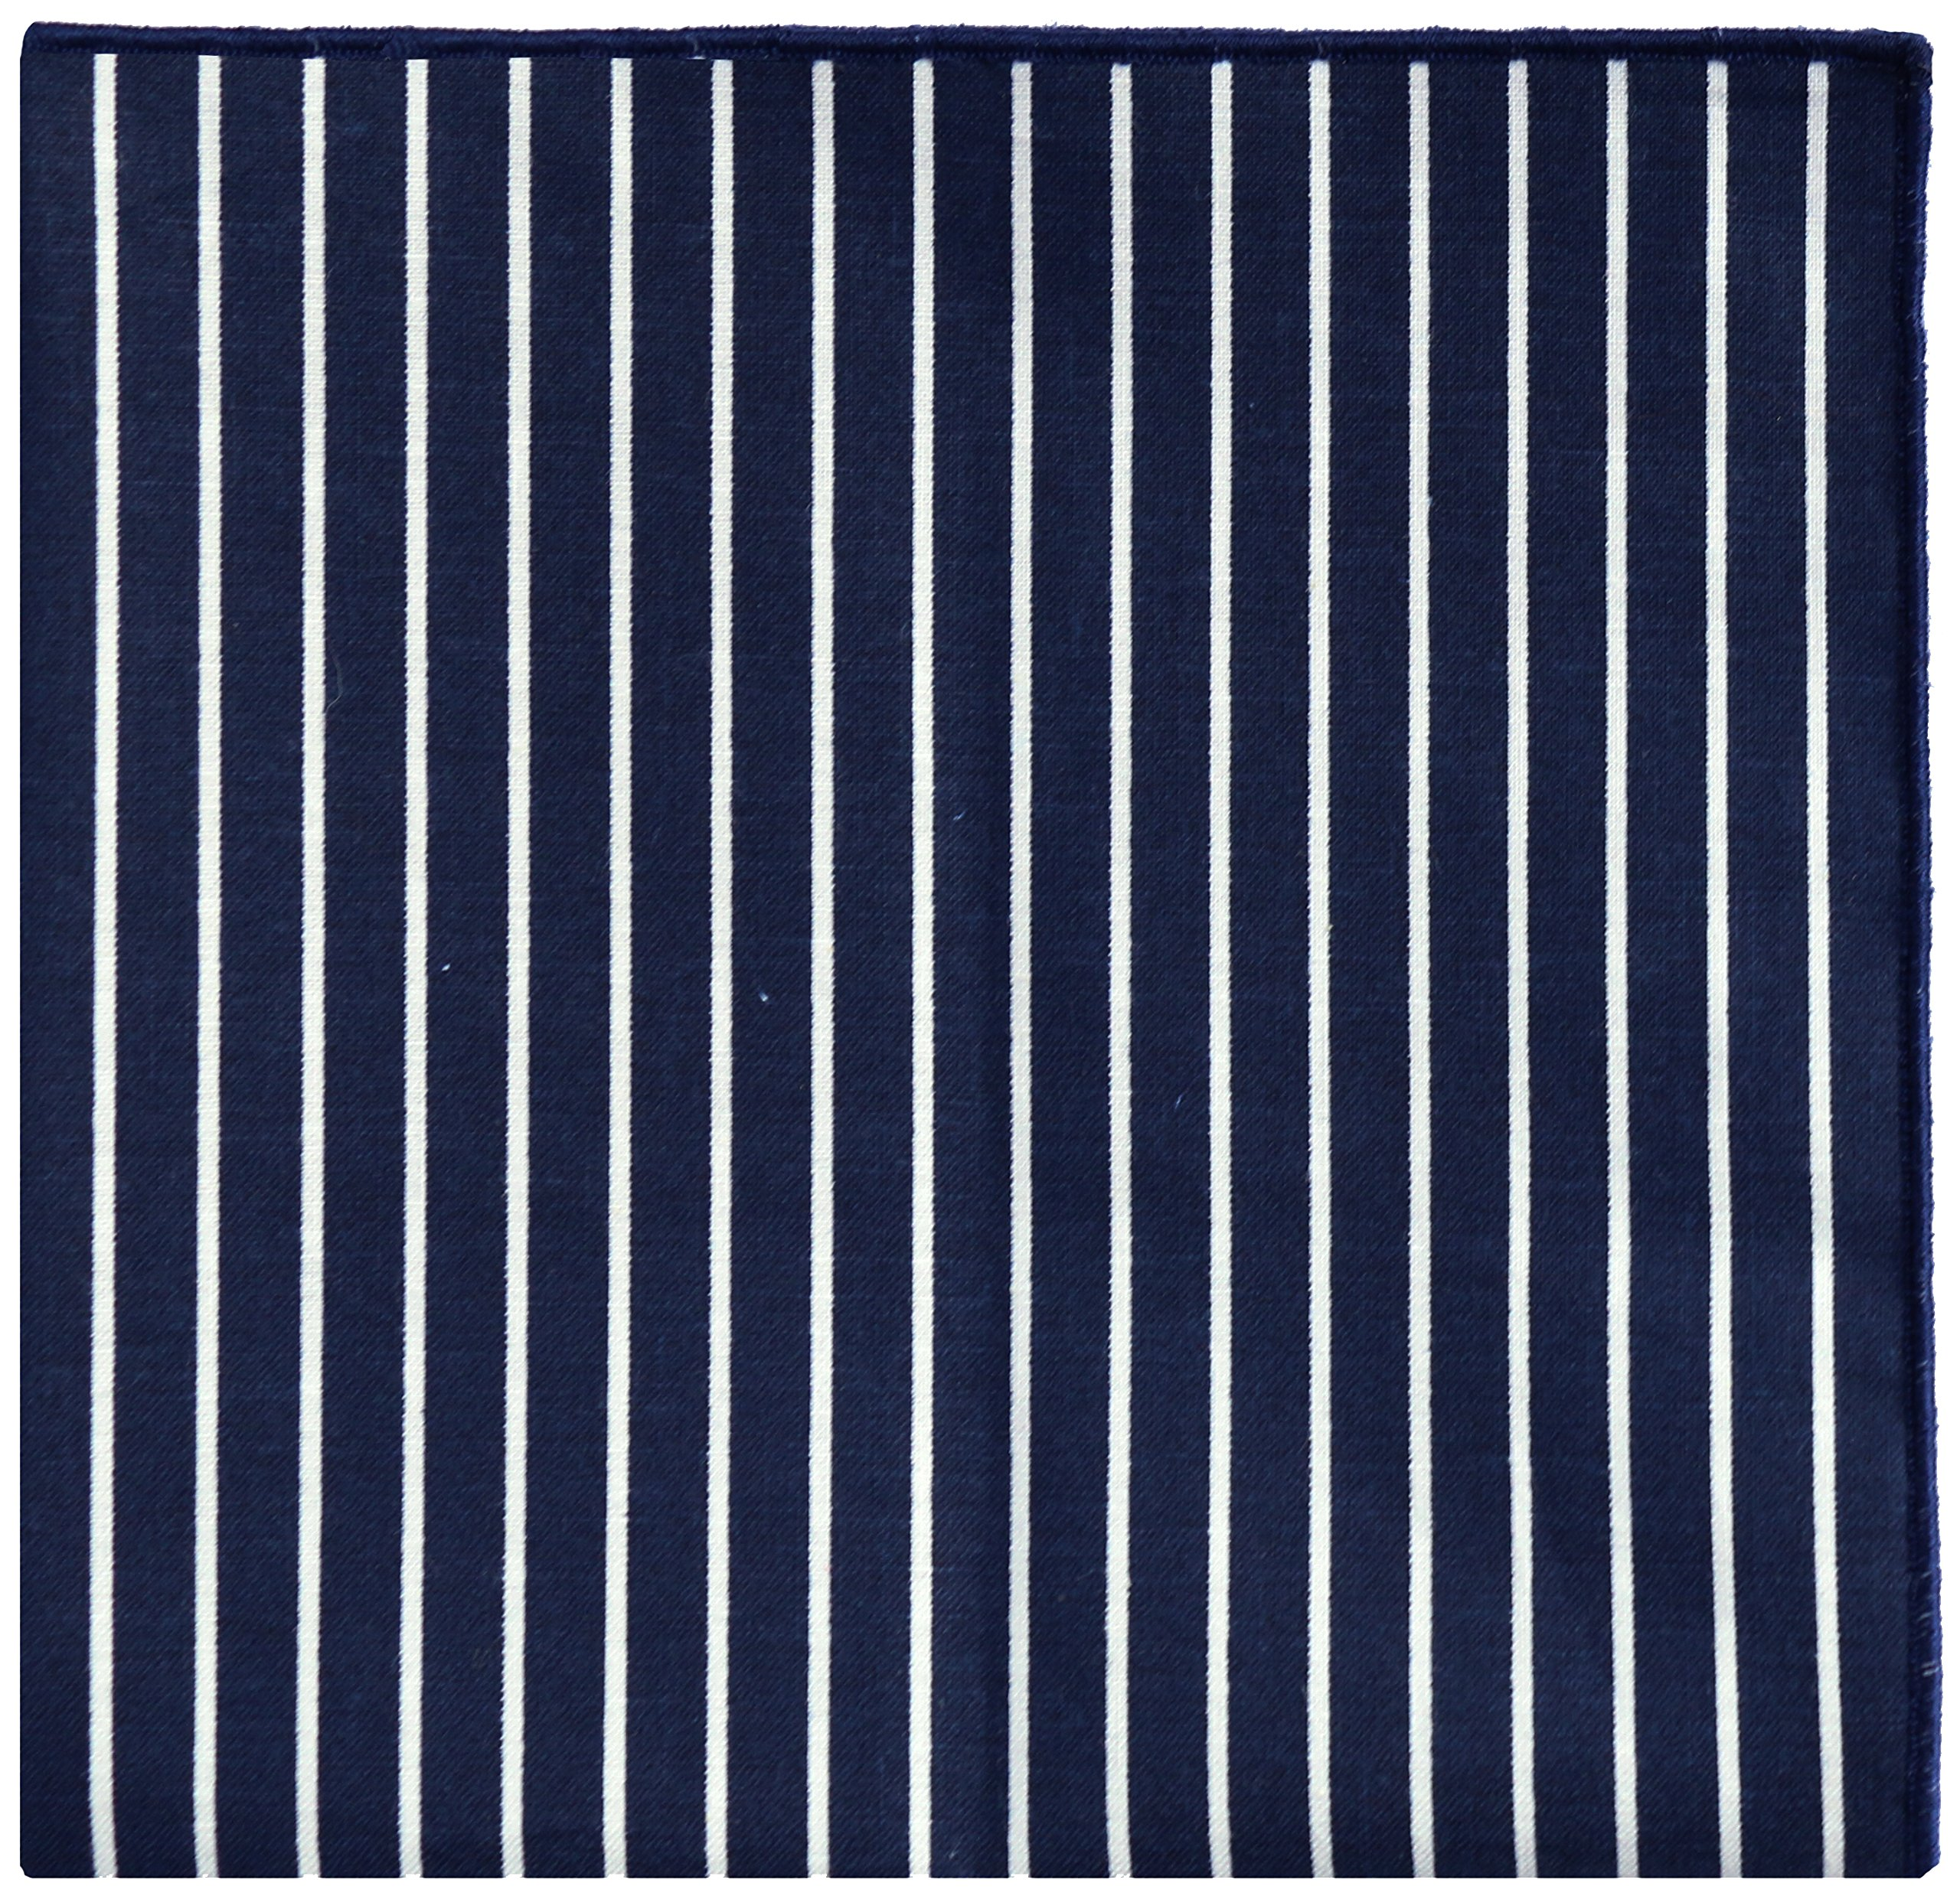 Navy Blue & White Stripe w/ Navy Button Men's Pocket Square by The Detailed Male by The Detailed Male (Image #2)